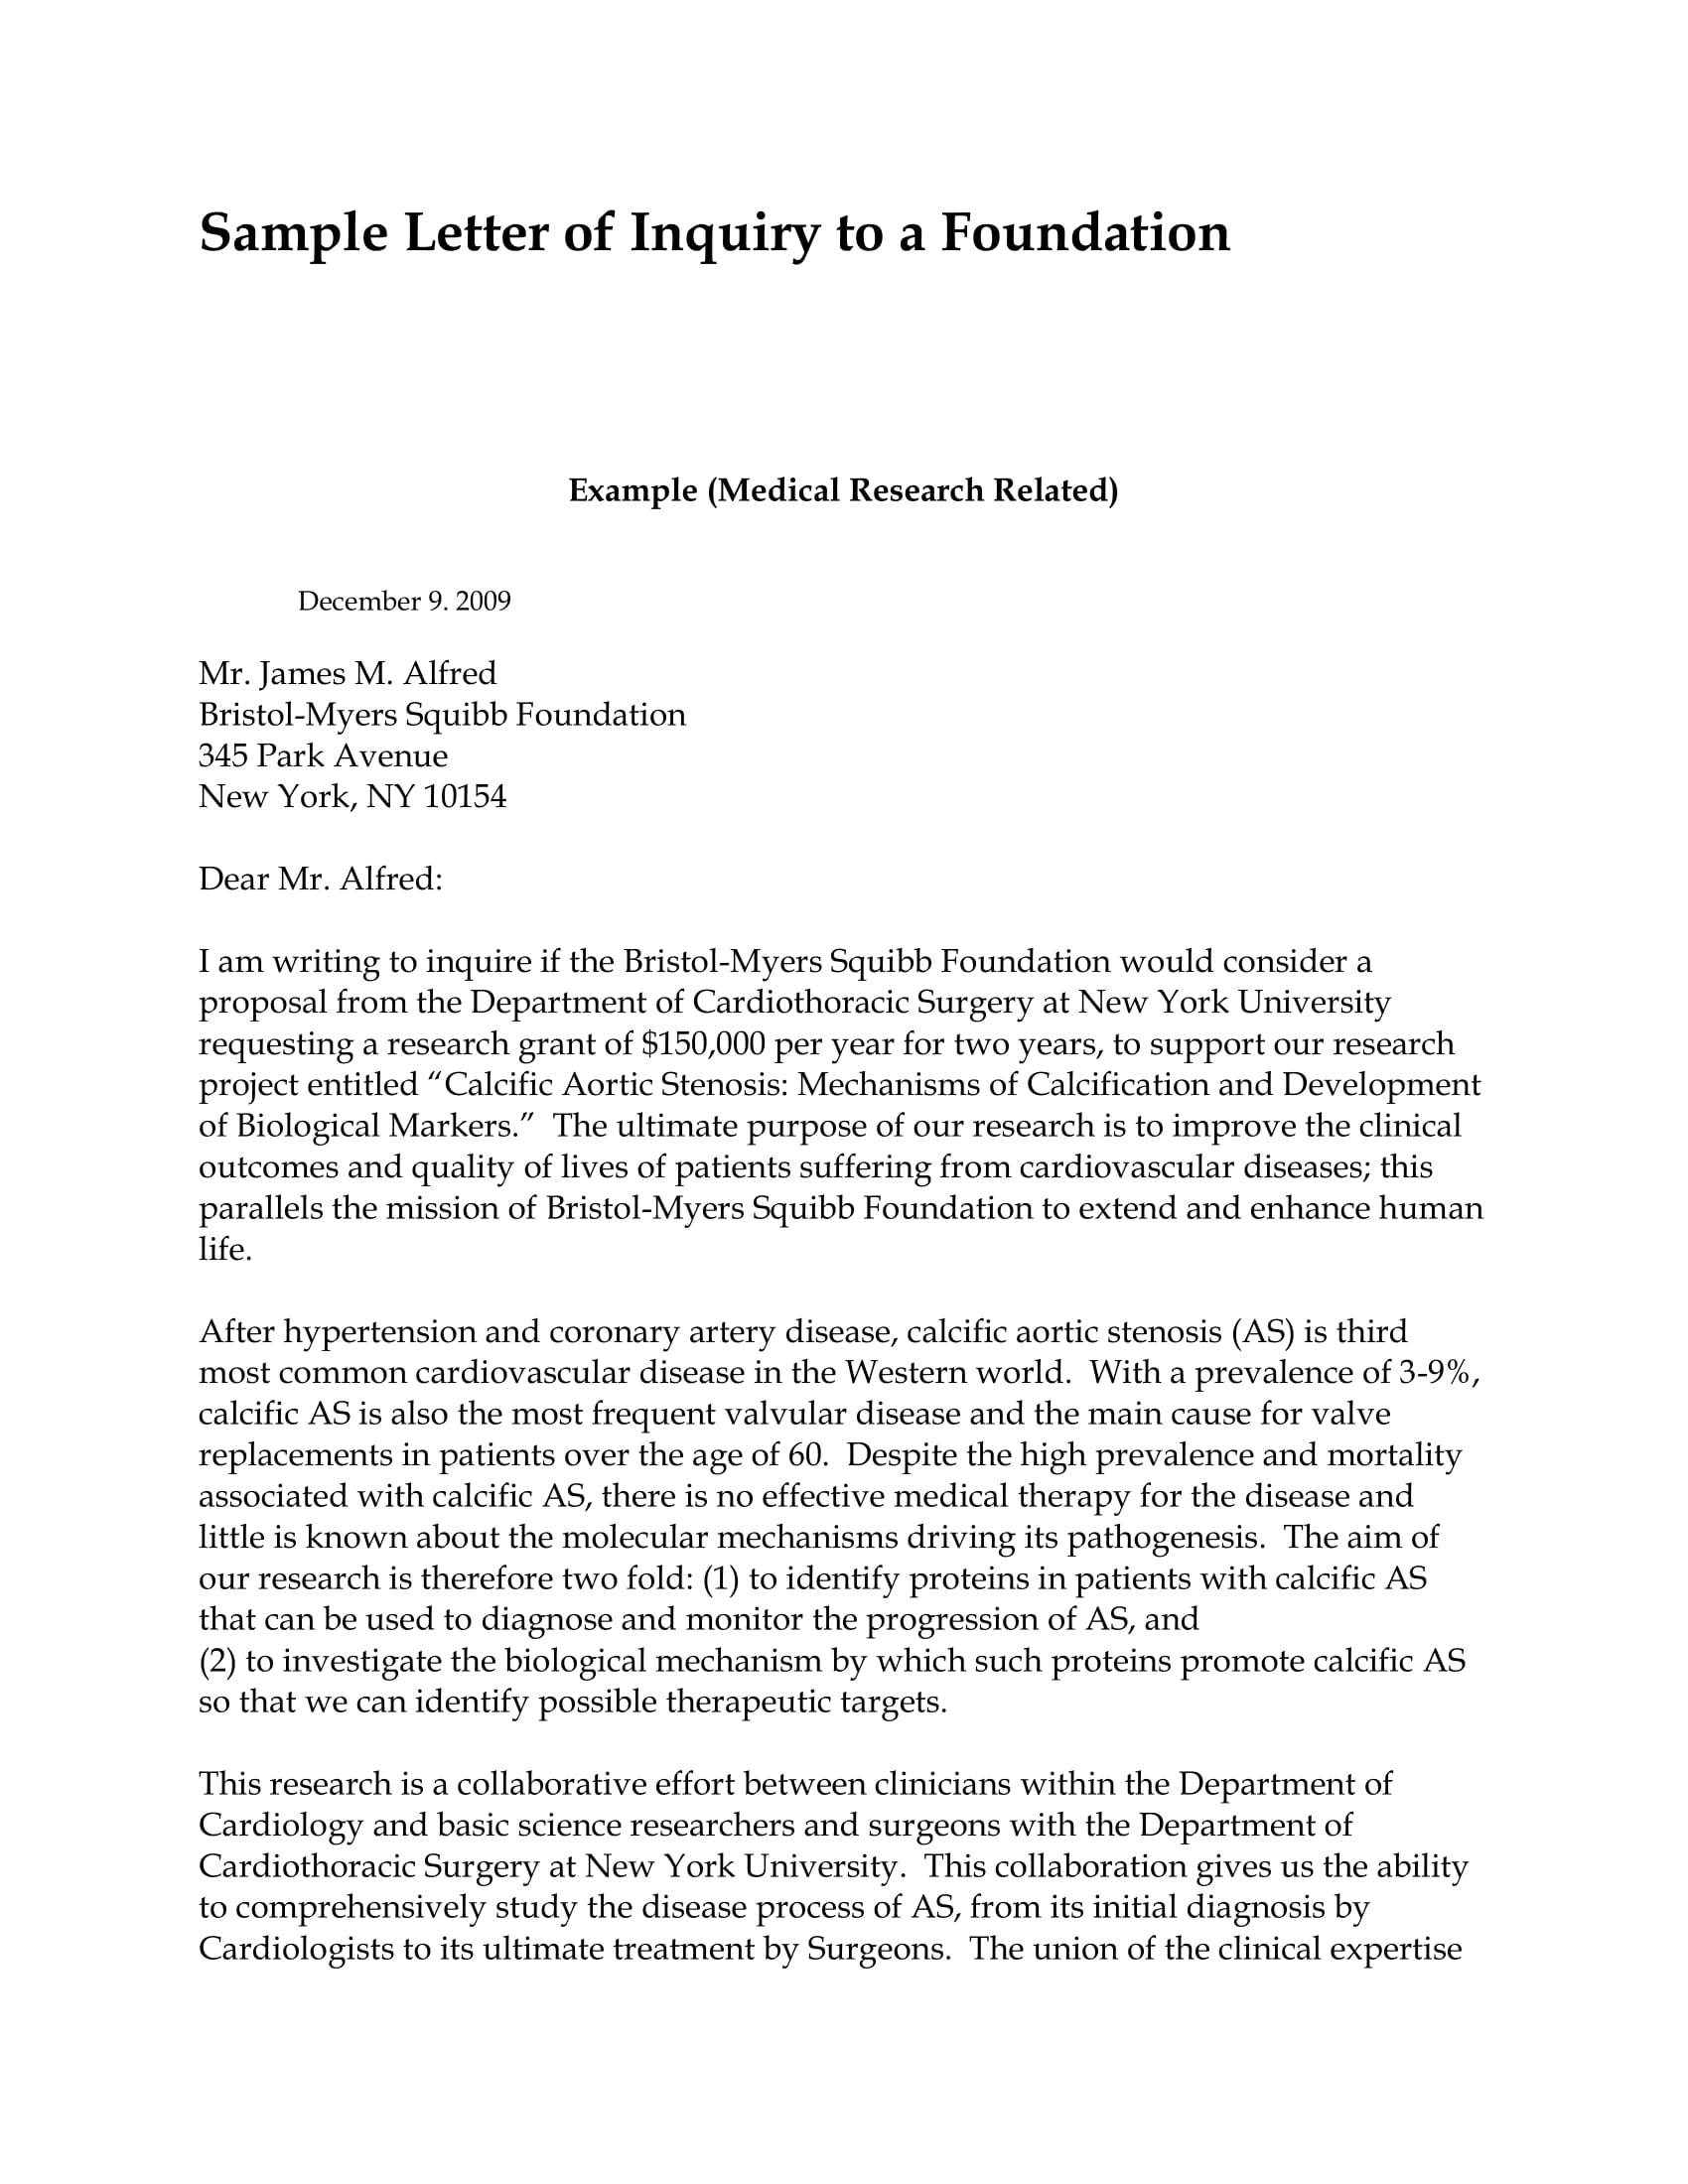 Foundation Proposal Cover Letter 2